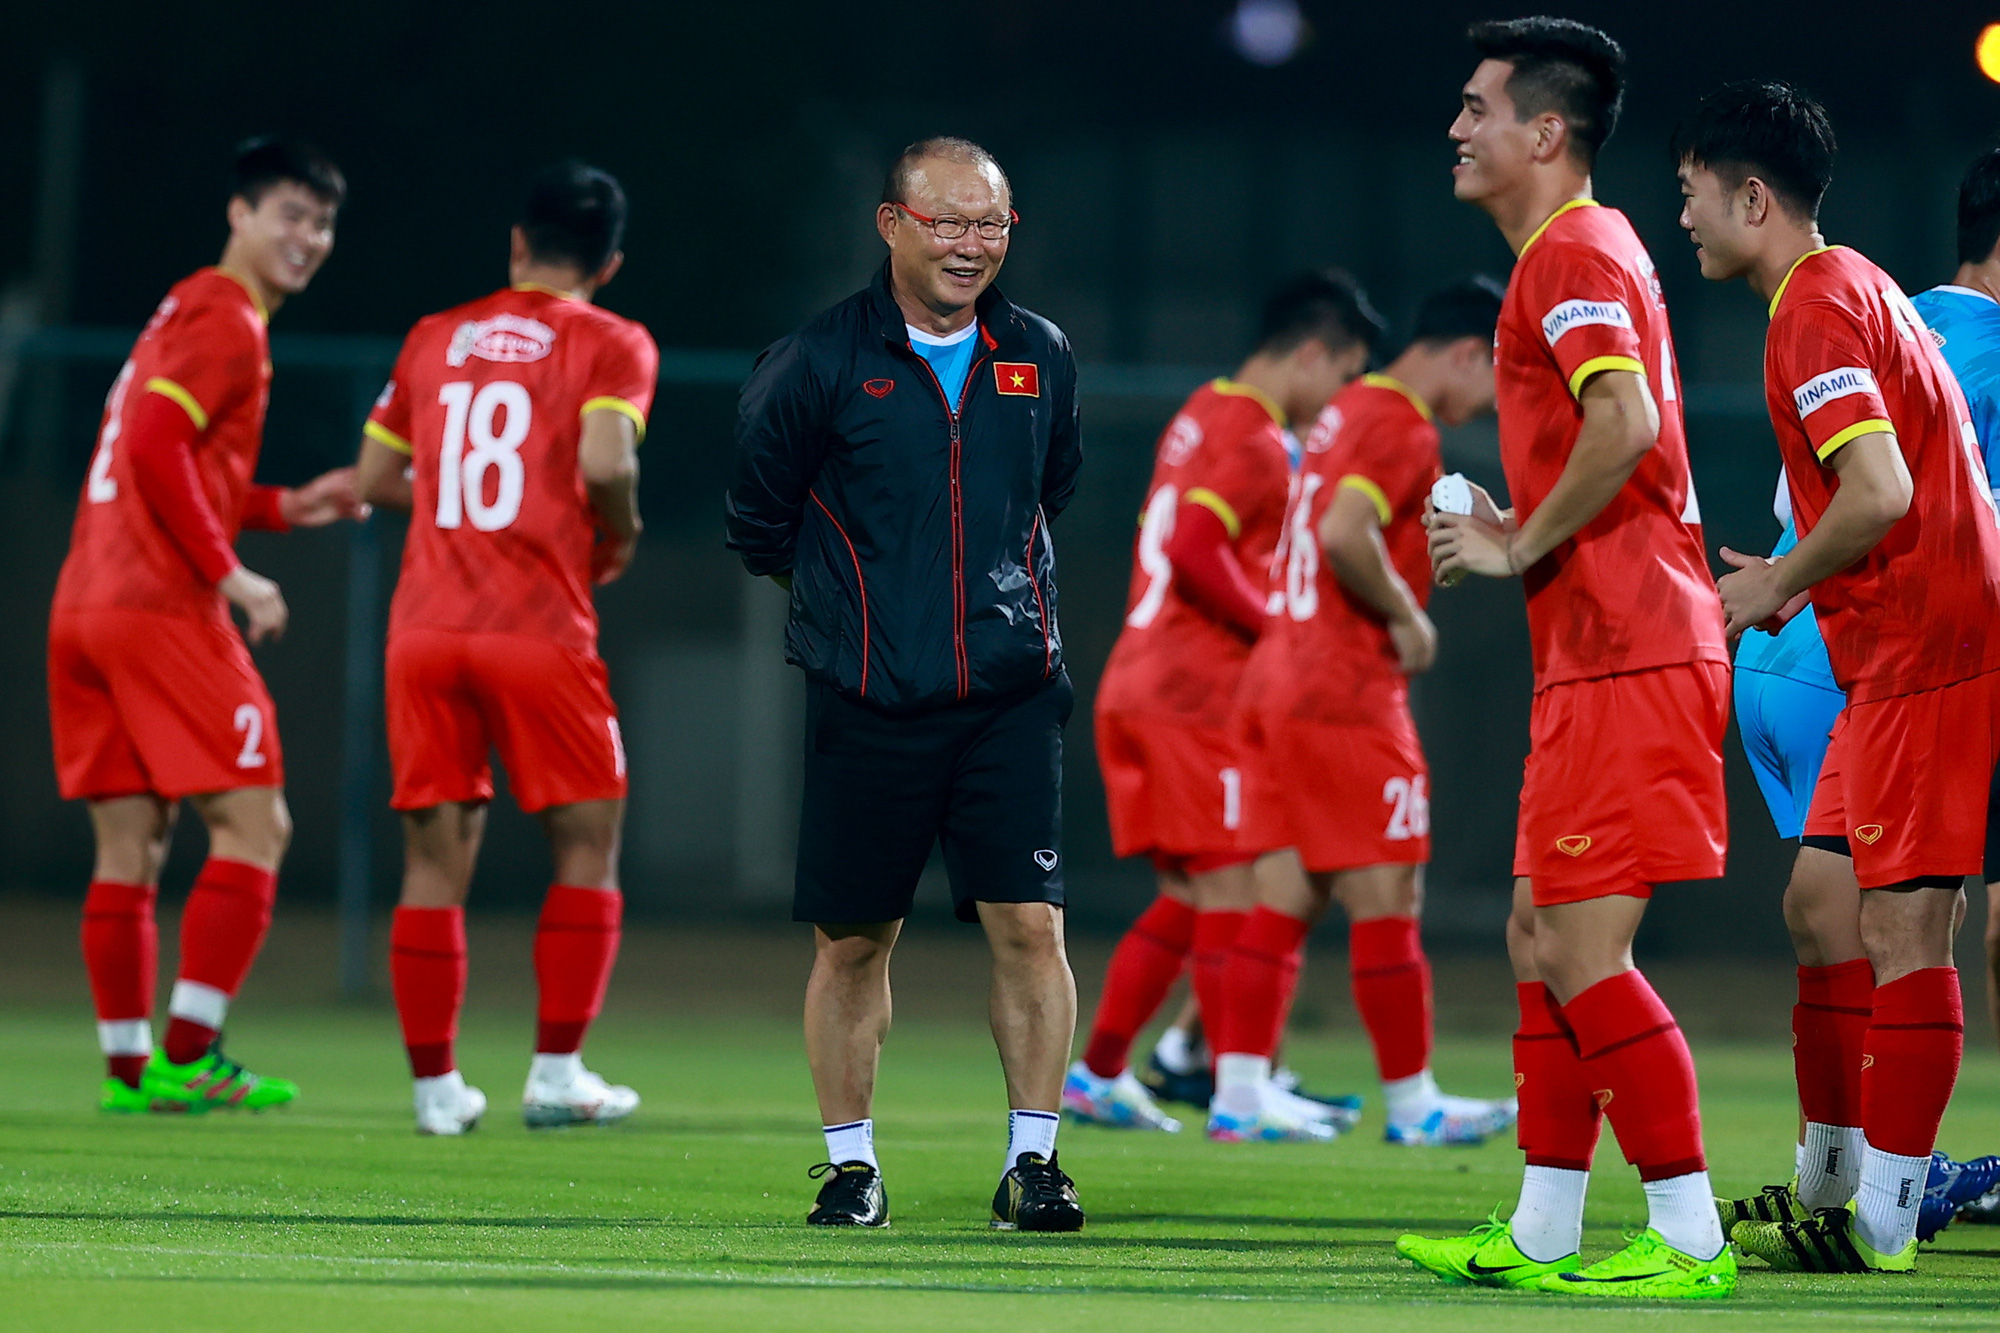 Bookmakers predict victory for Vietnam in World Cup qualifier against Indonesia